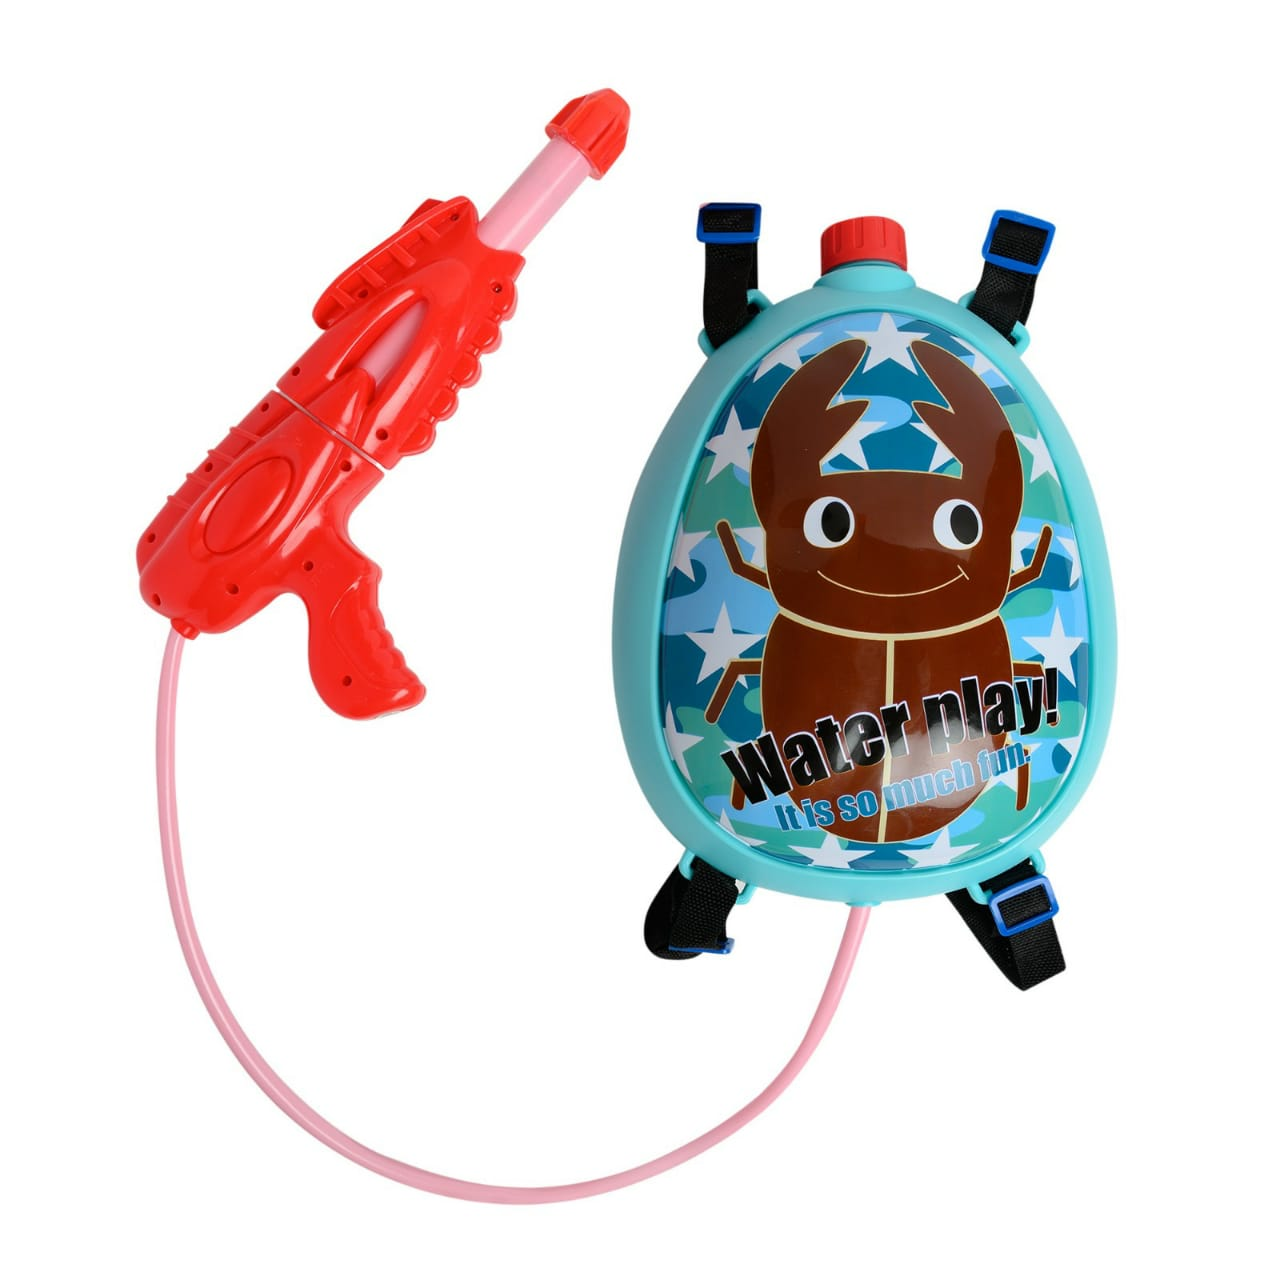 Water Play Backpack Water Gun for Kids